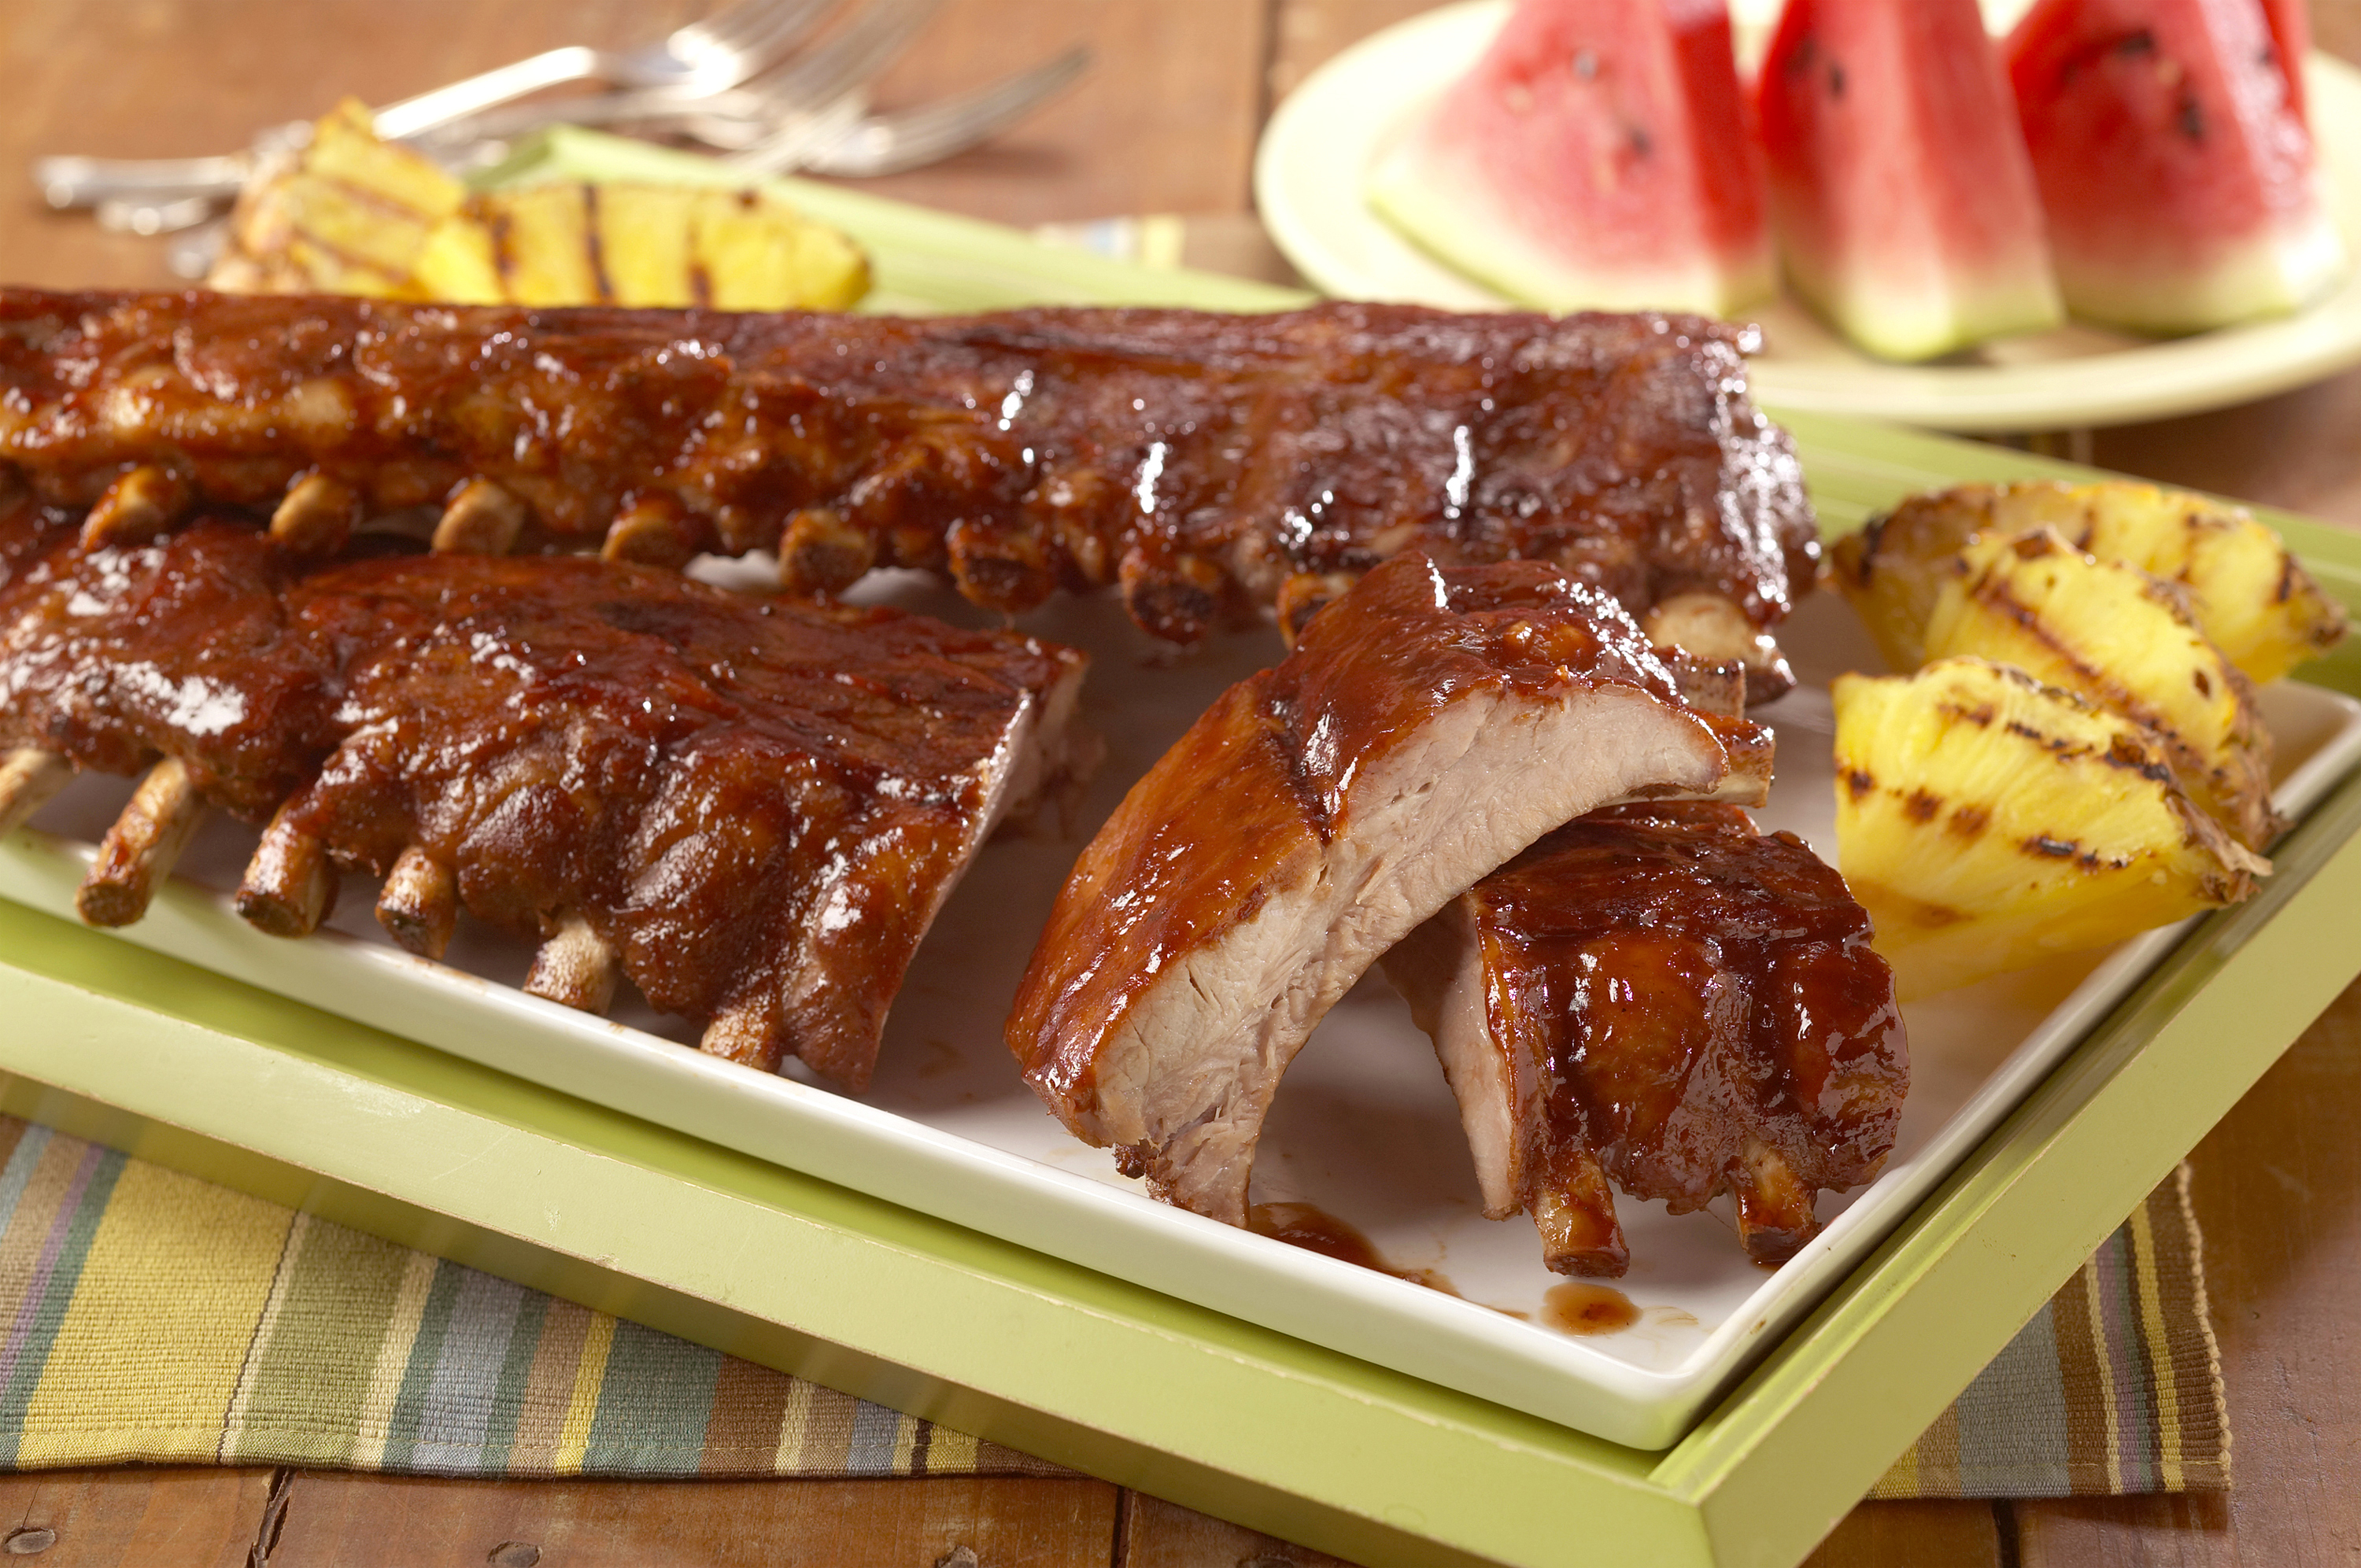 food meat ribs Food HD Wallpaper